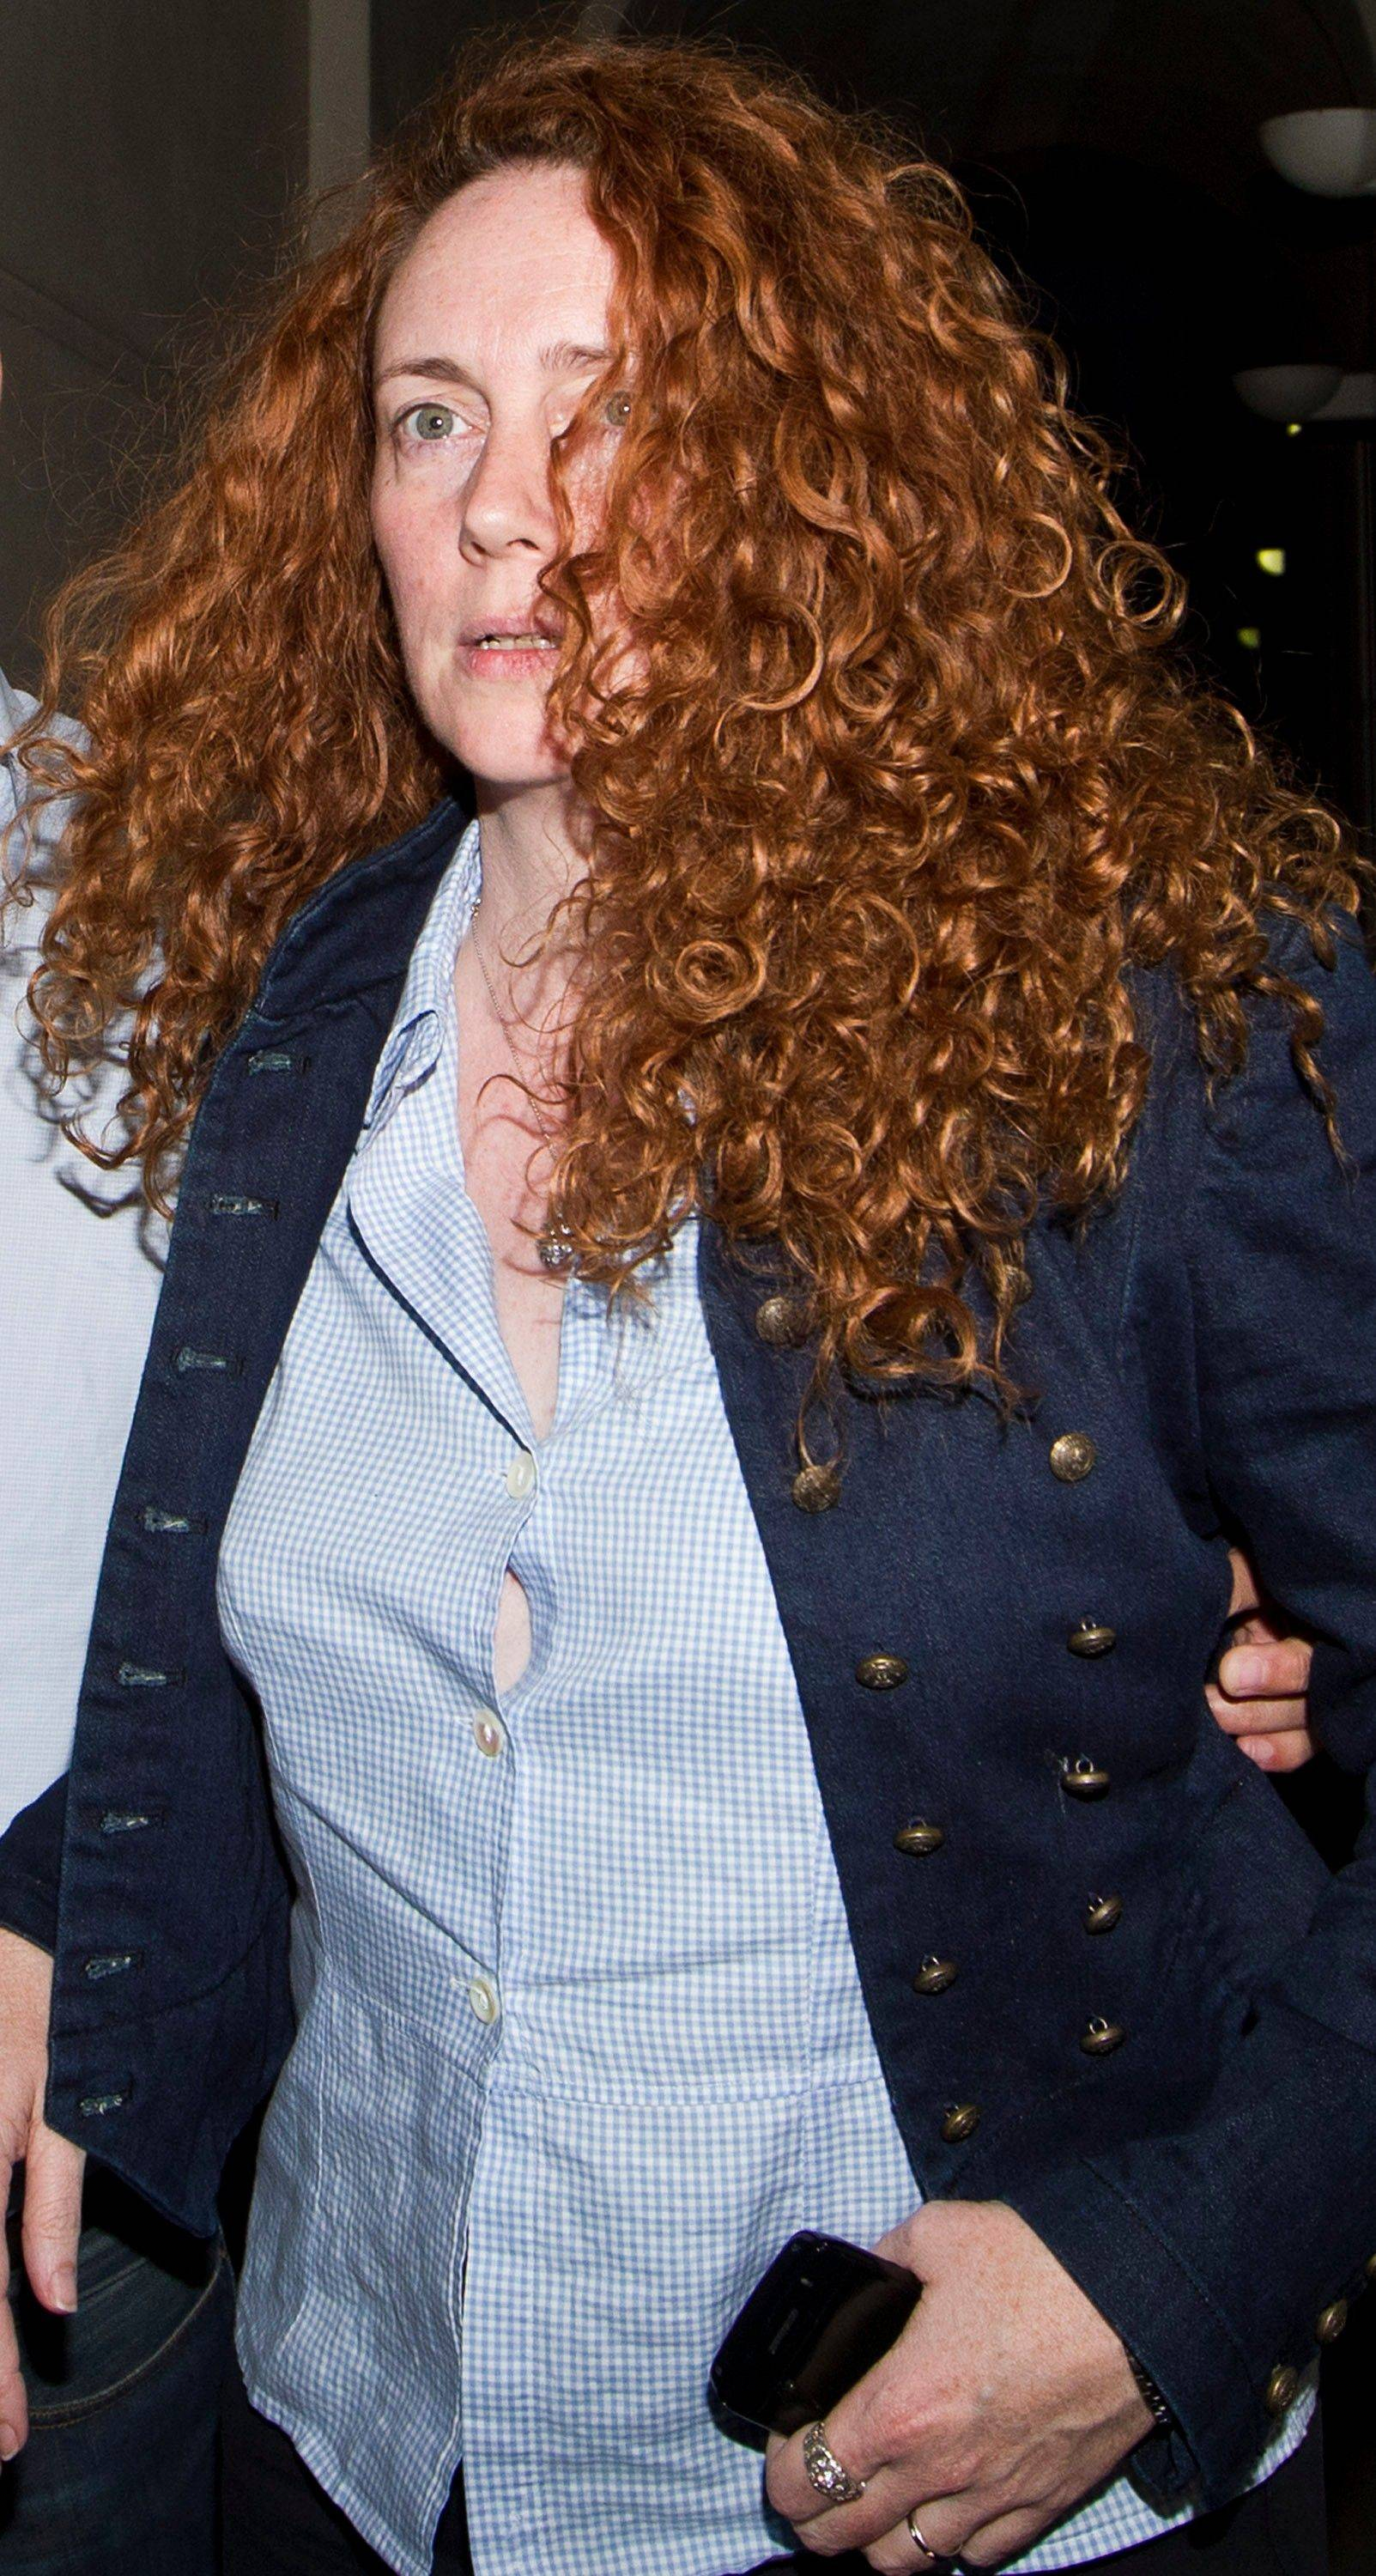 Sky television sources reported on Sunday that former Chief executive of News International, Rebekah Brooks had been arrested by police investigating a phone hacking and corruption scandal that has